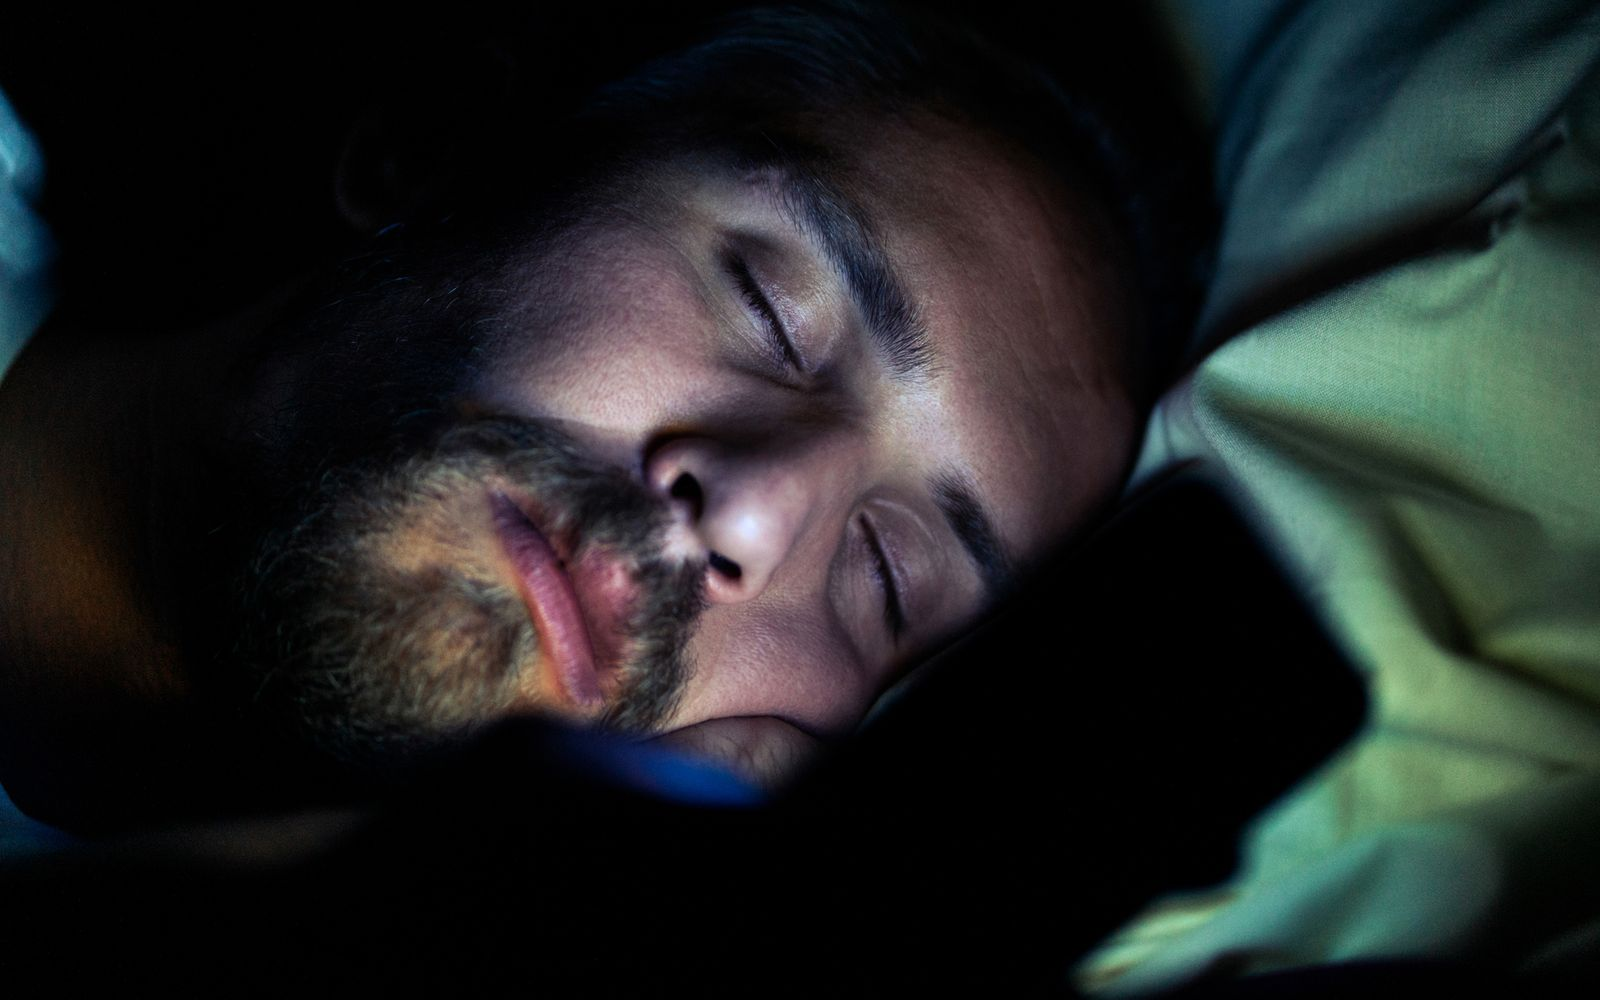 Bearded tired man in bed at night. He is watching something on phone